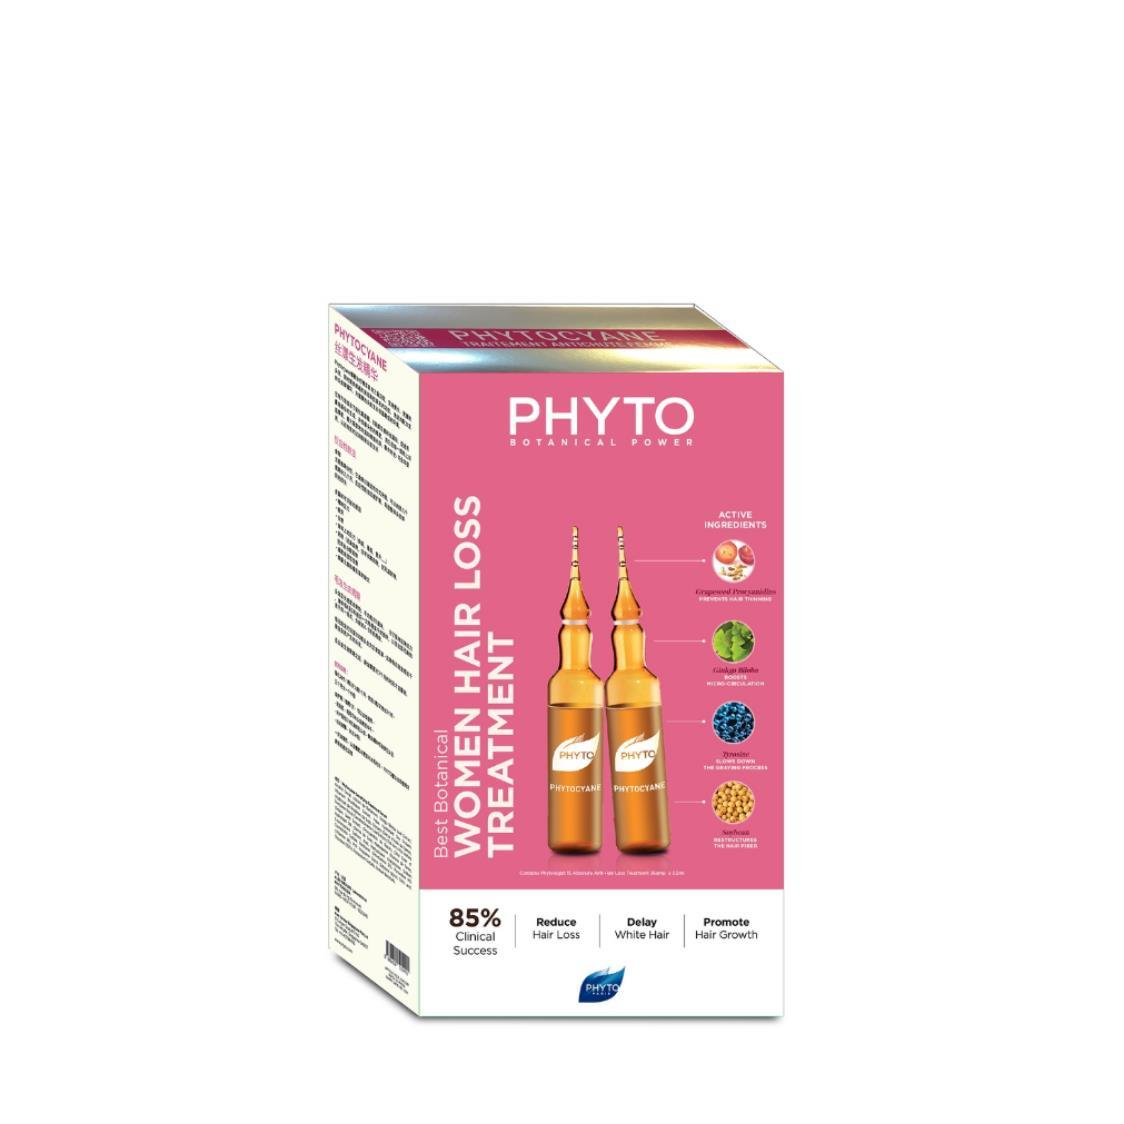 Phytocyane Treatment Triple Pack